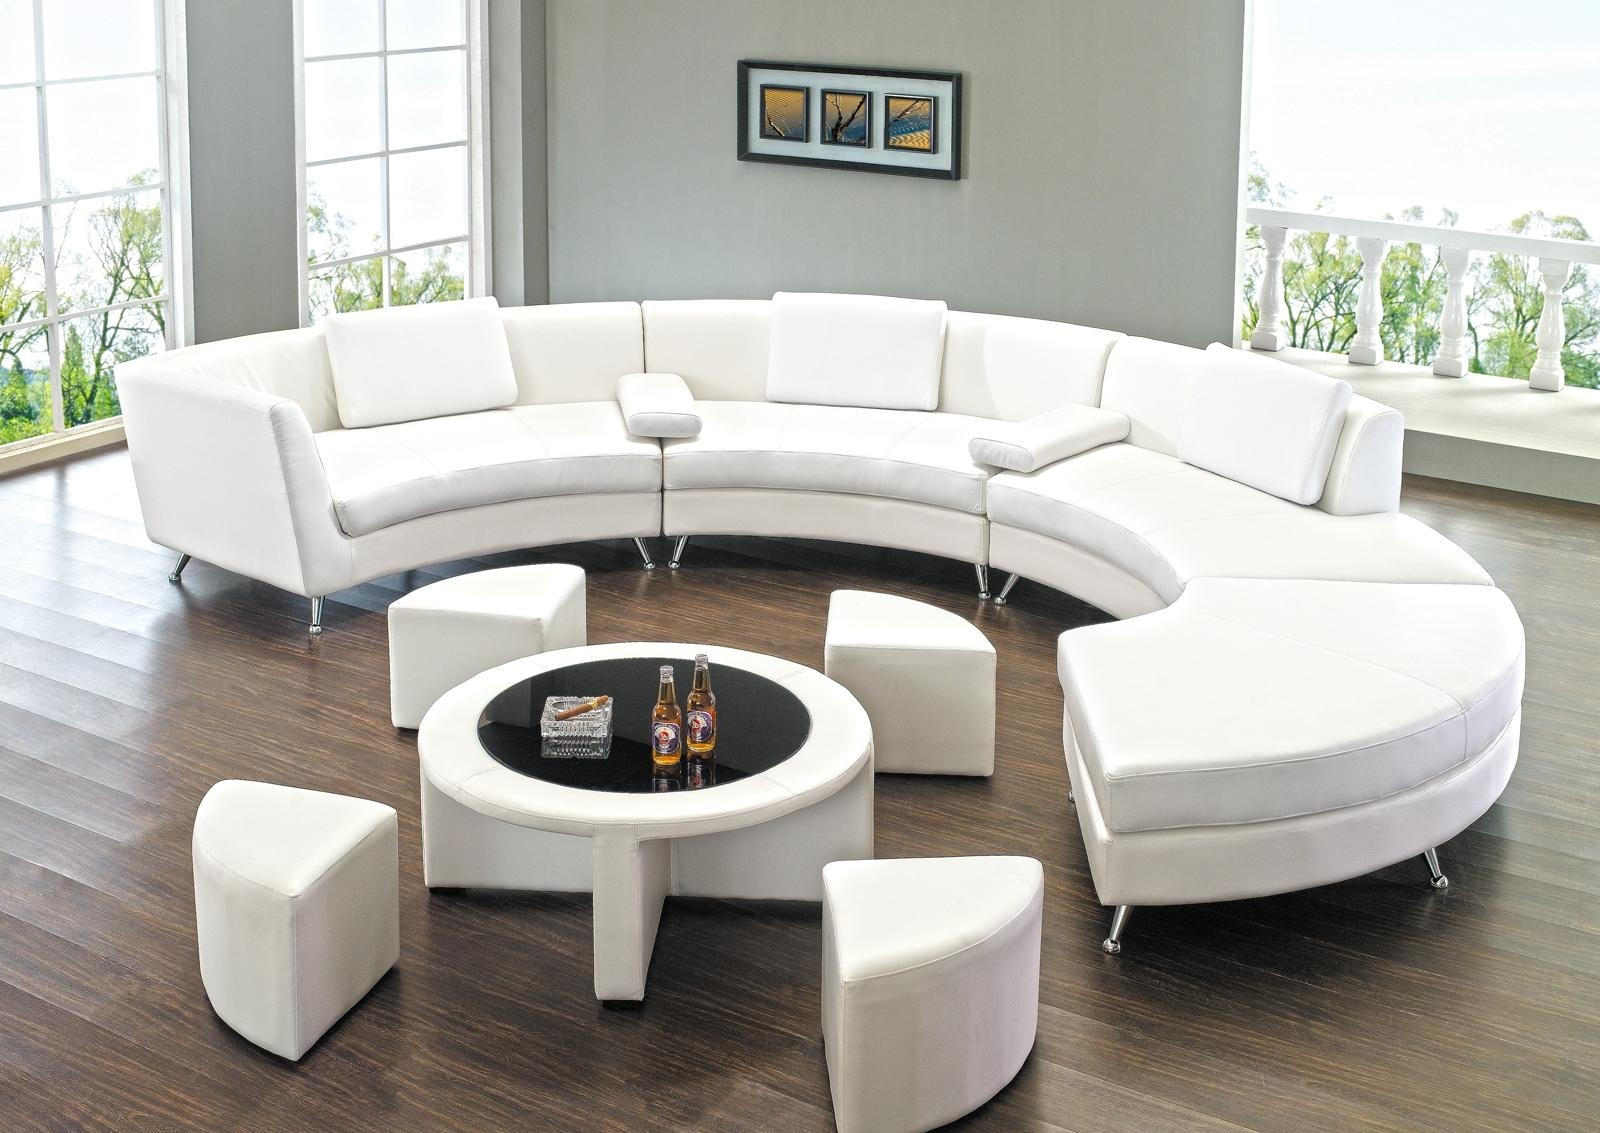 Sofas Center : Circular Sectional Sofas Outdoor Sofa Circleniture Inside Circle Sofas (Image 18 of 20)